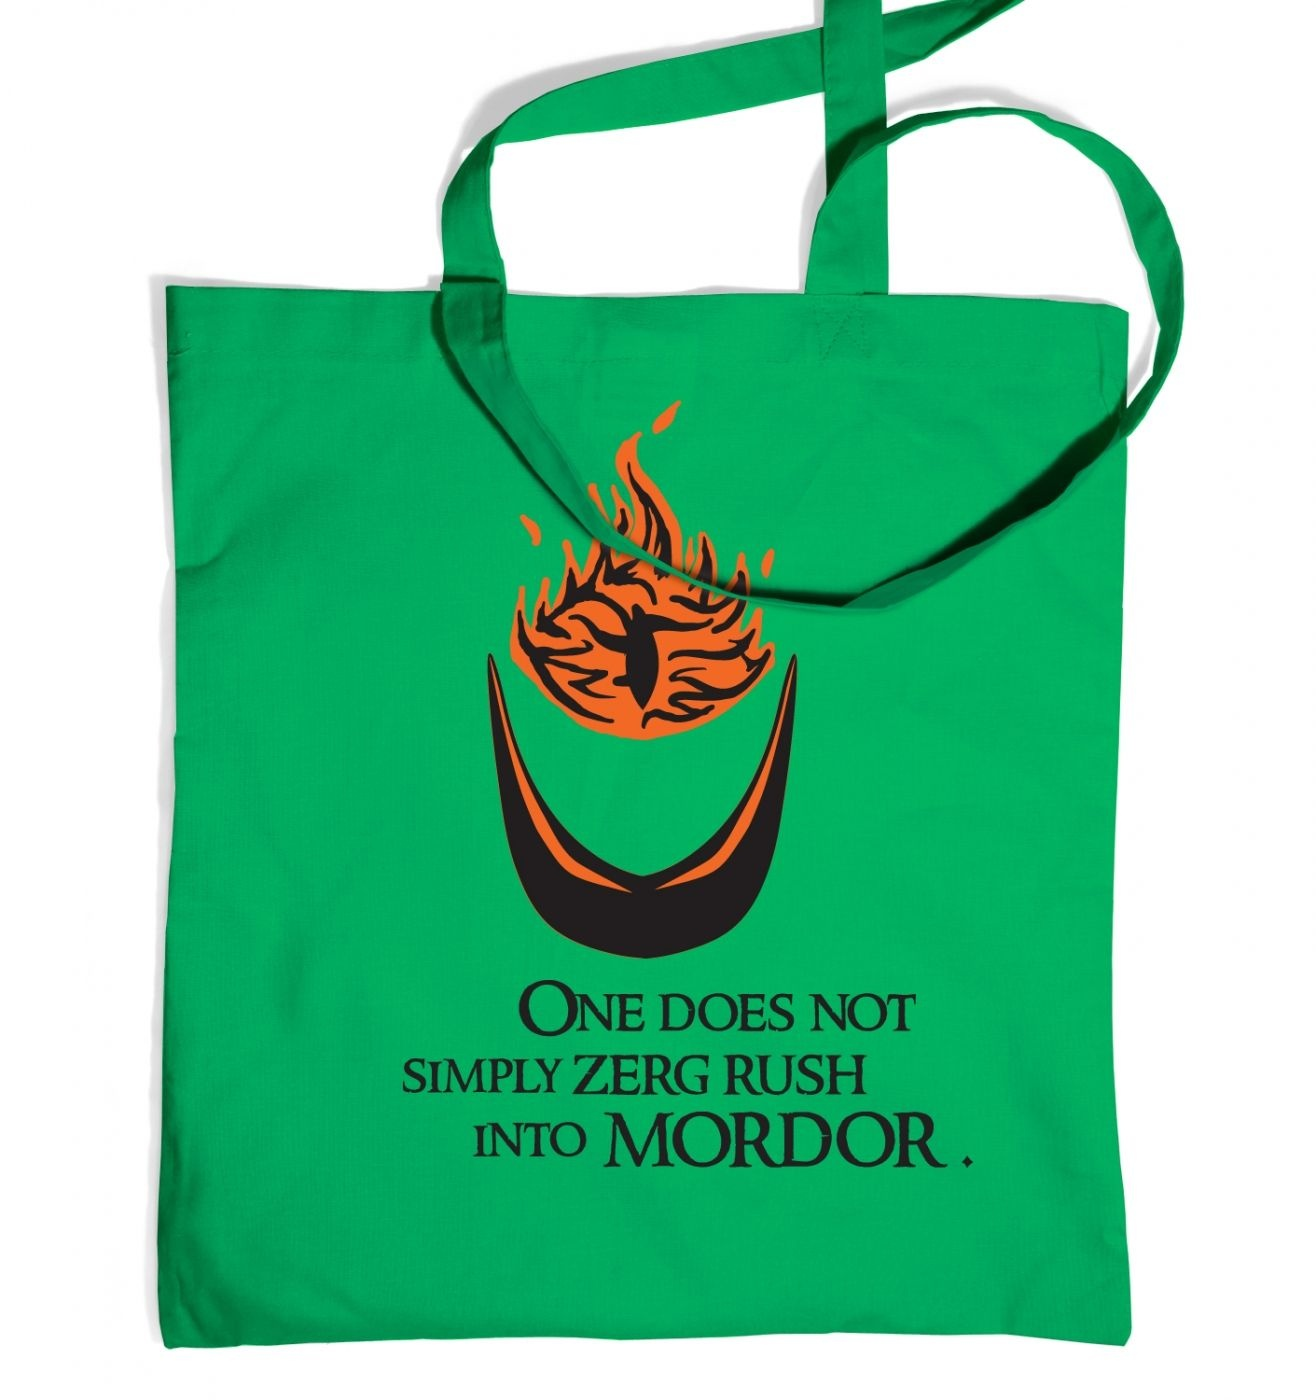 Zerg Rush into Mordor tote bag